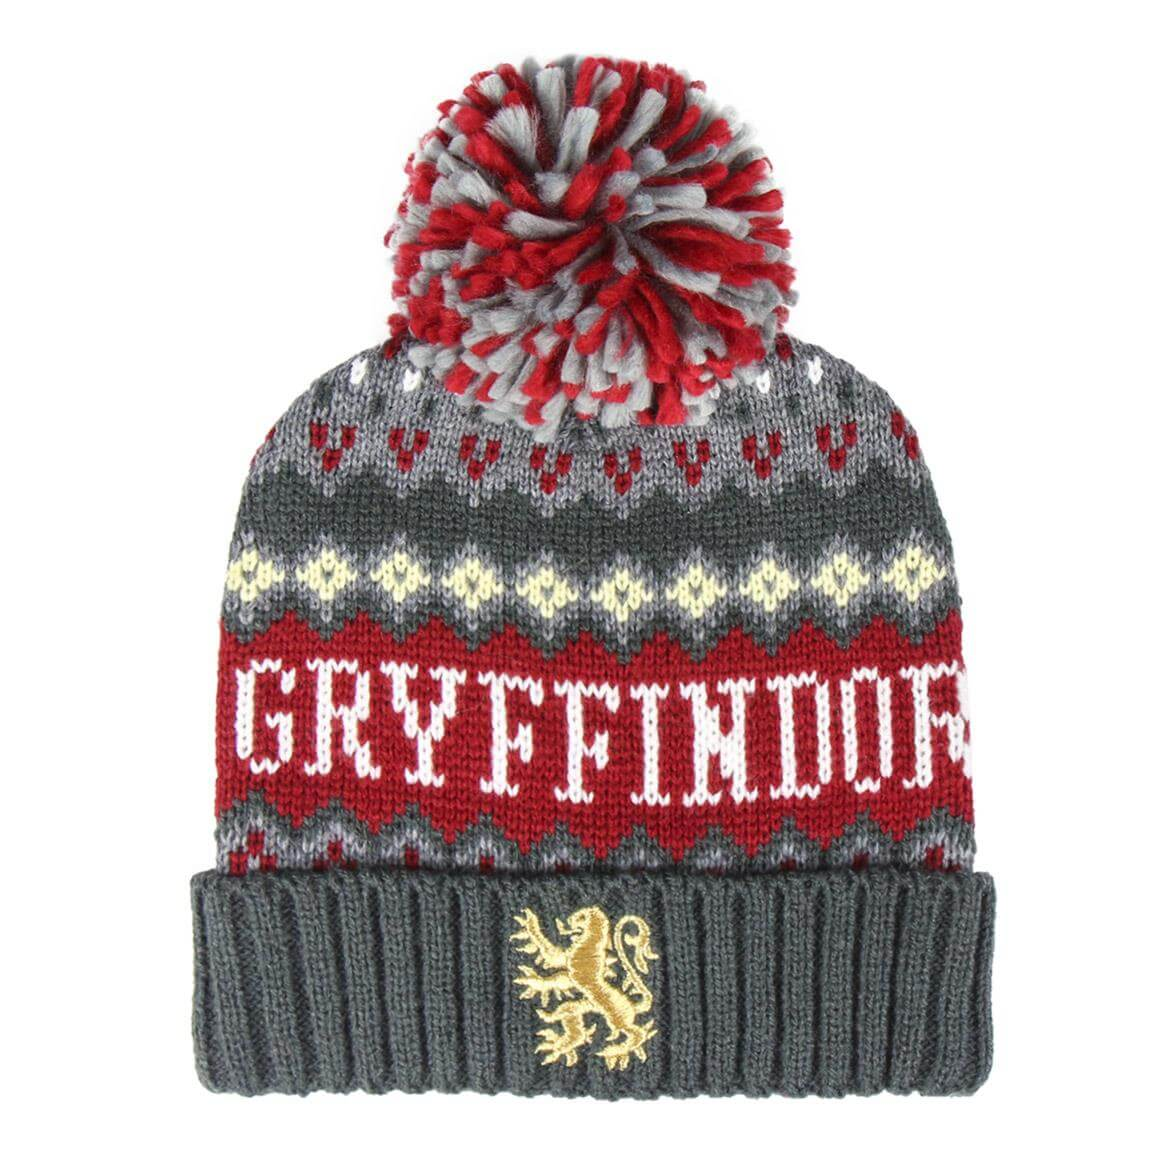 BONNET POMPON GRYFFONDOR - HARRY POTTER - la boutique du sorcier